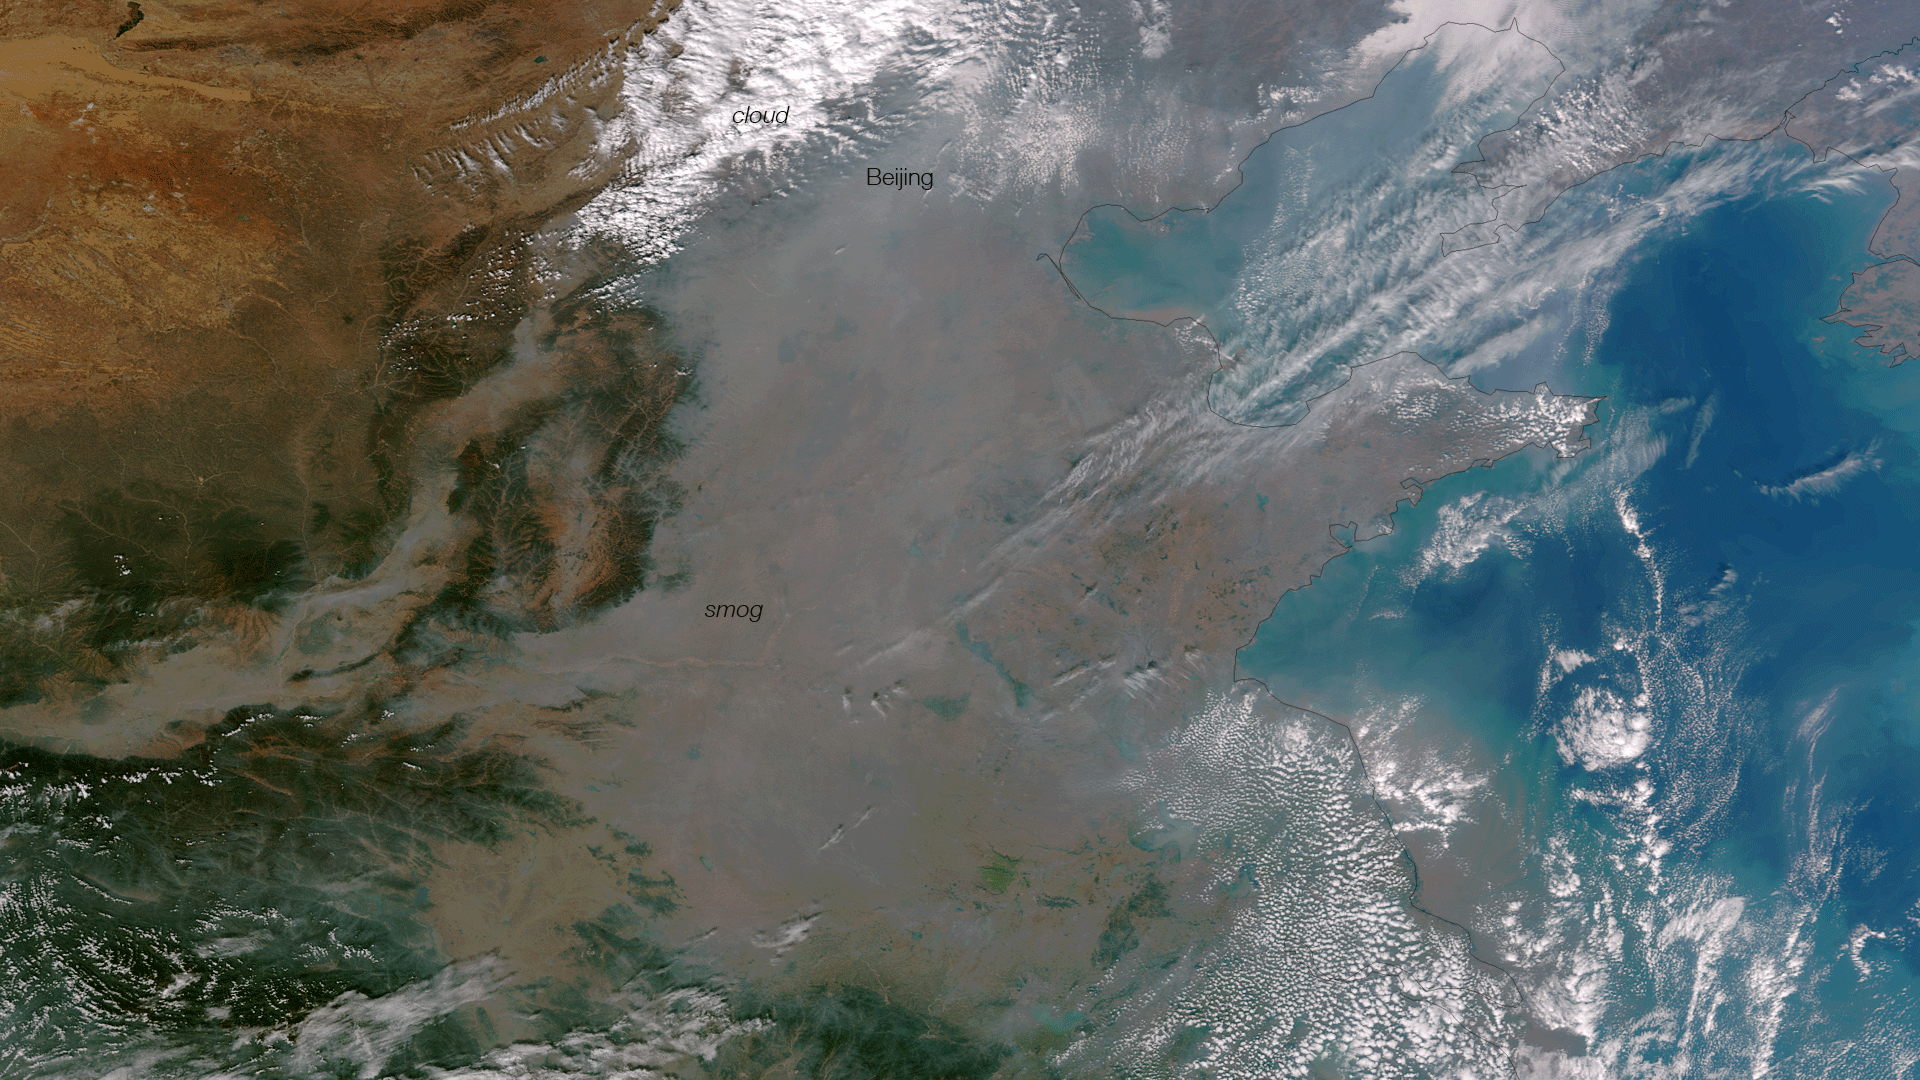 Chinas Smog As Seen From Space WMKY 1920x1080